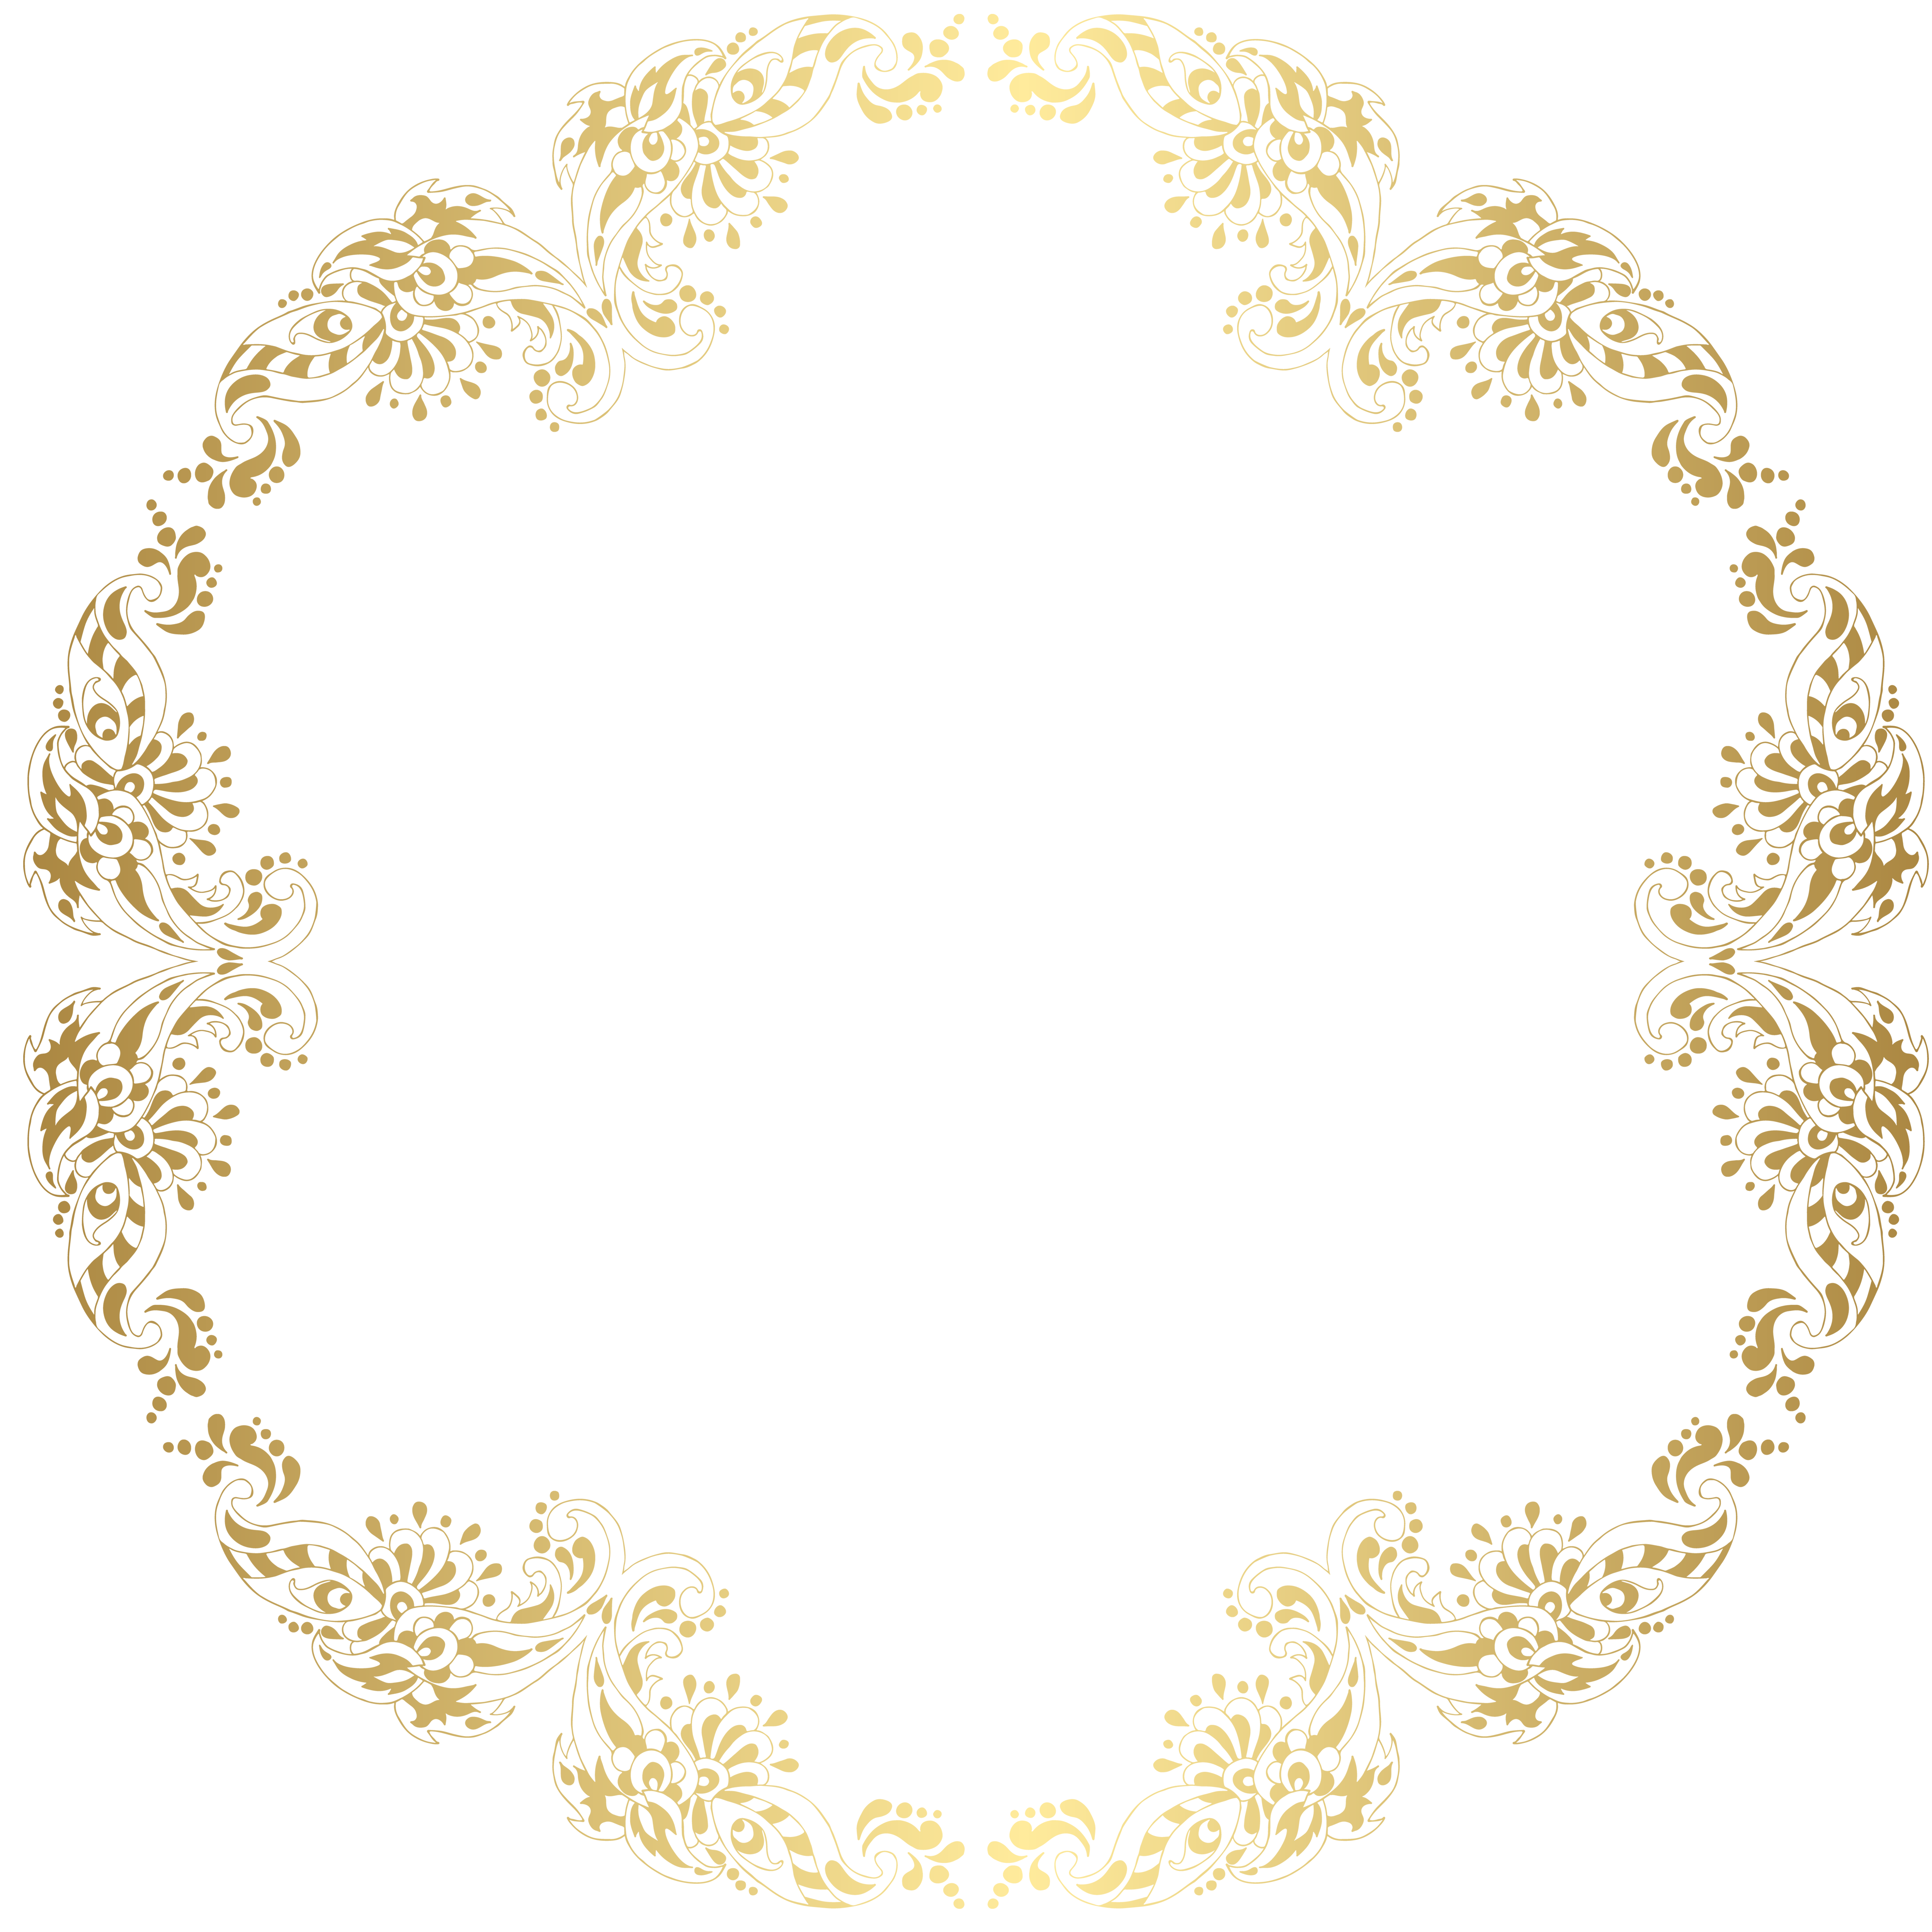 Golden Circle Sliding Frame Pattern Curve Of Gold Stripes Move The Golden Arches Frame Vector Png And Vector With Transparent Background For Free Download Gold Circle Frames Golden Circle Circle Frames